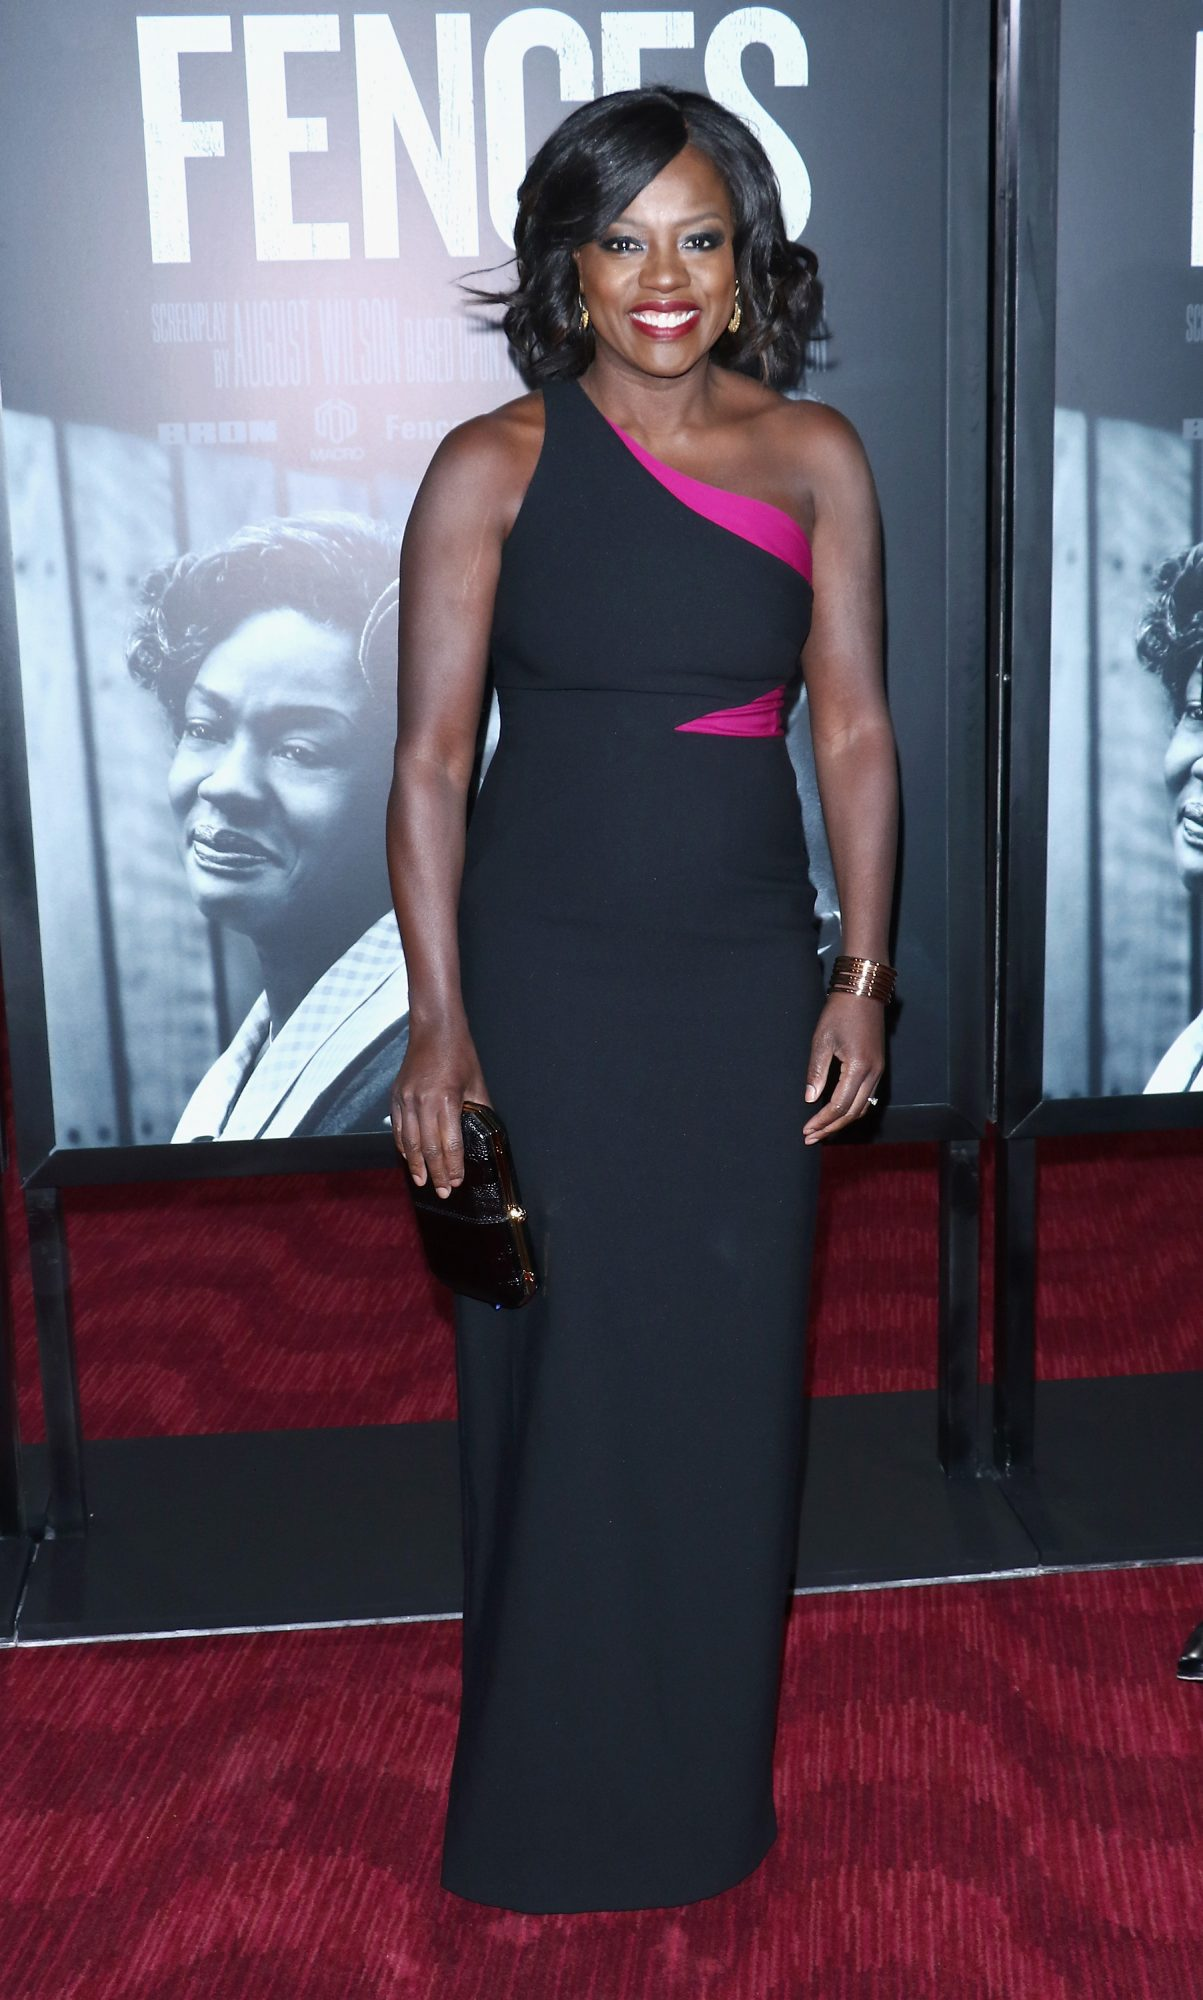 Viola Davis Fences Movie Premiere